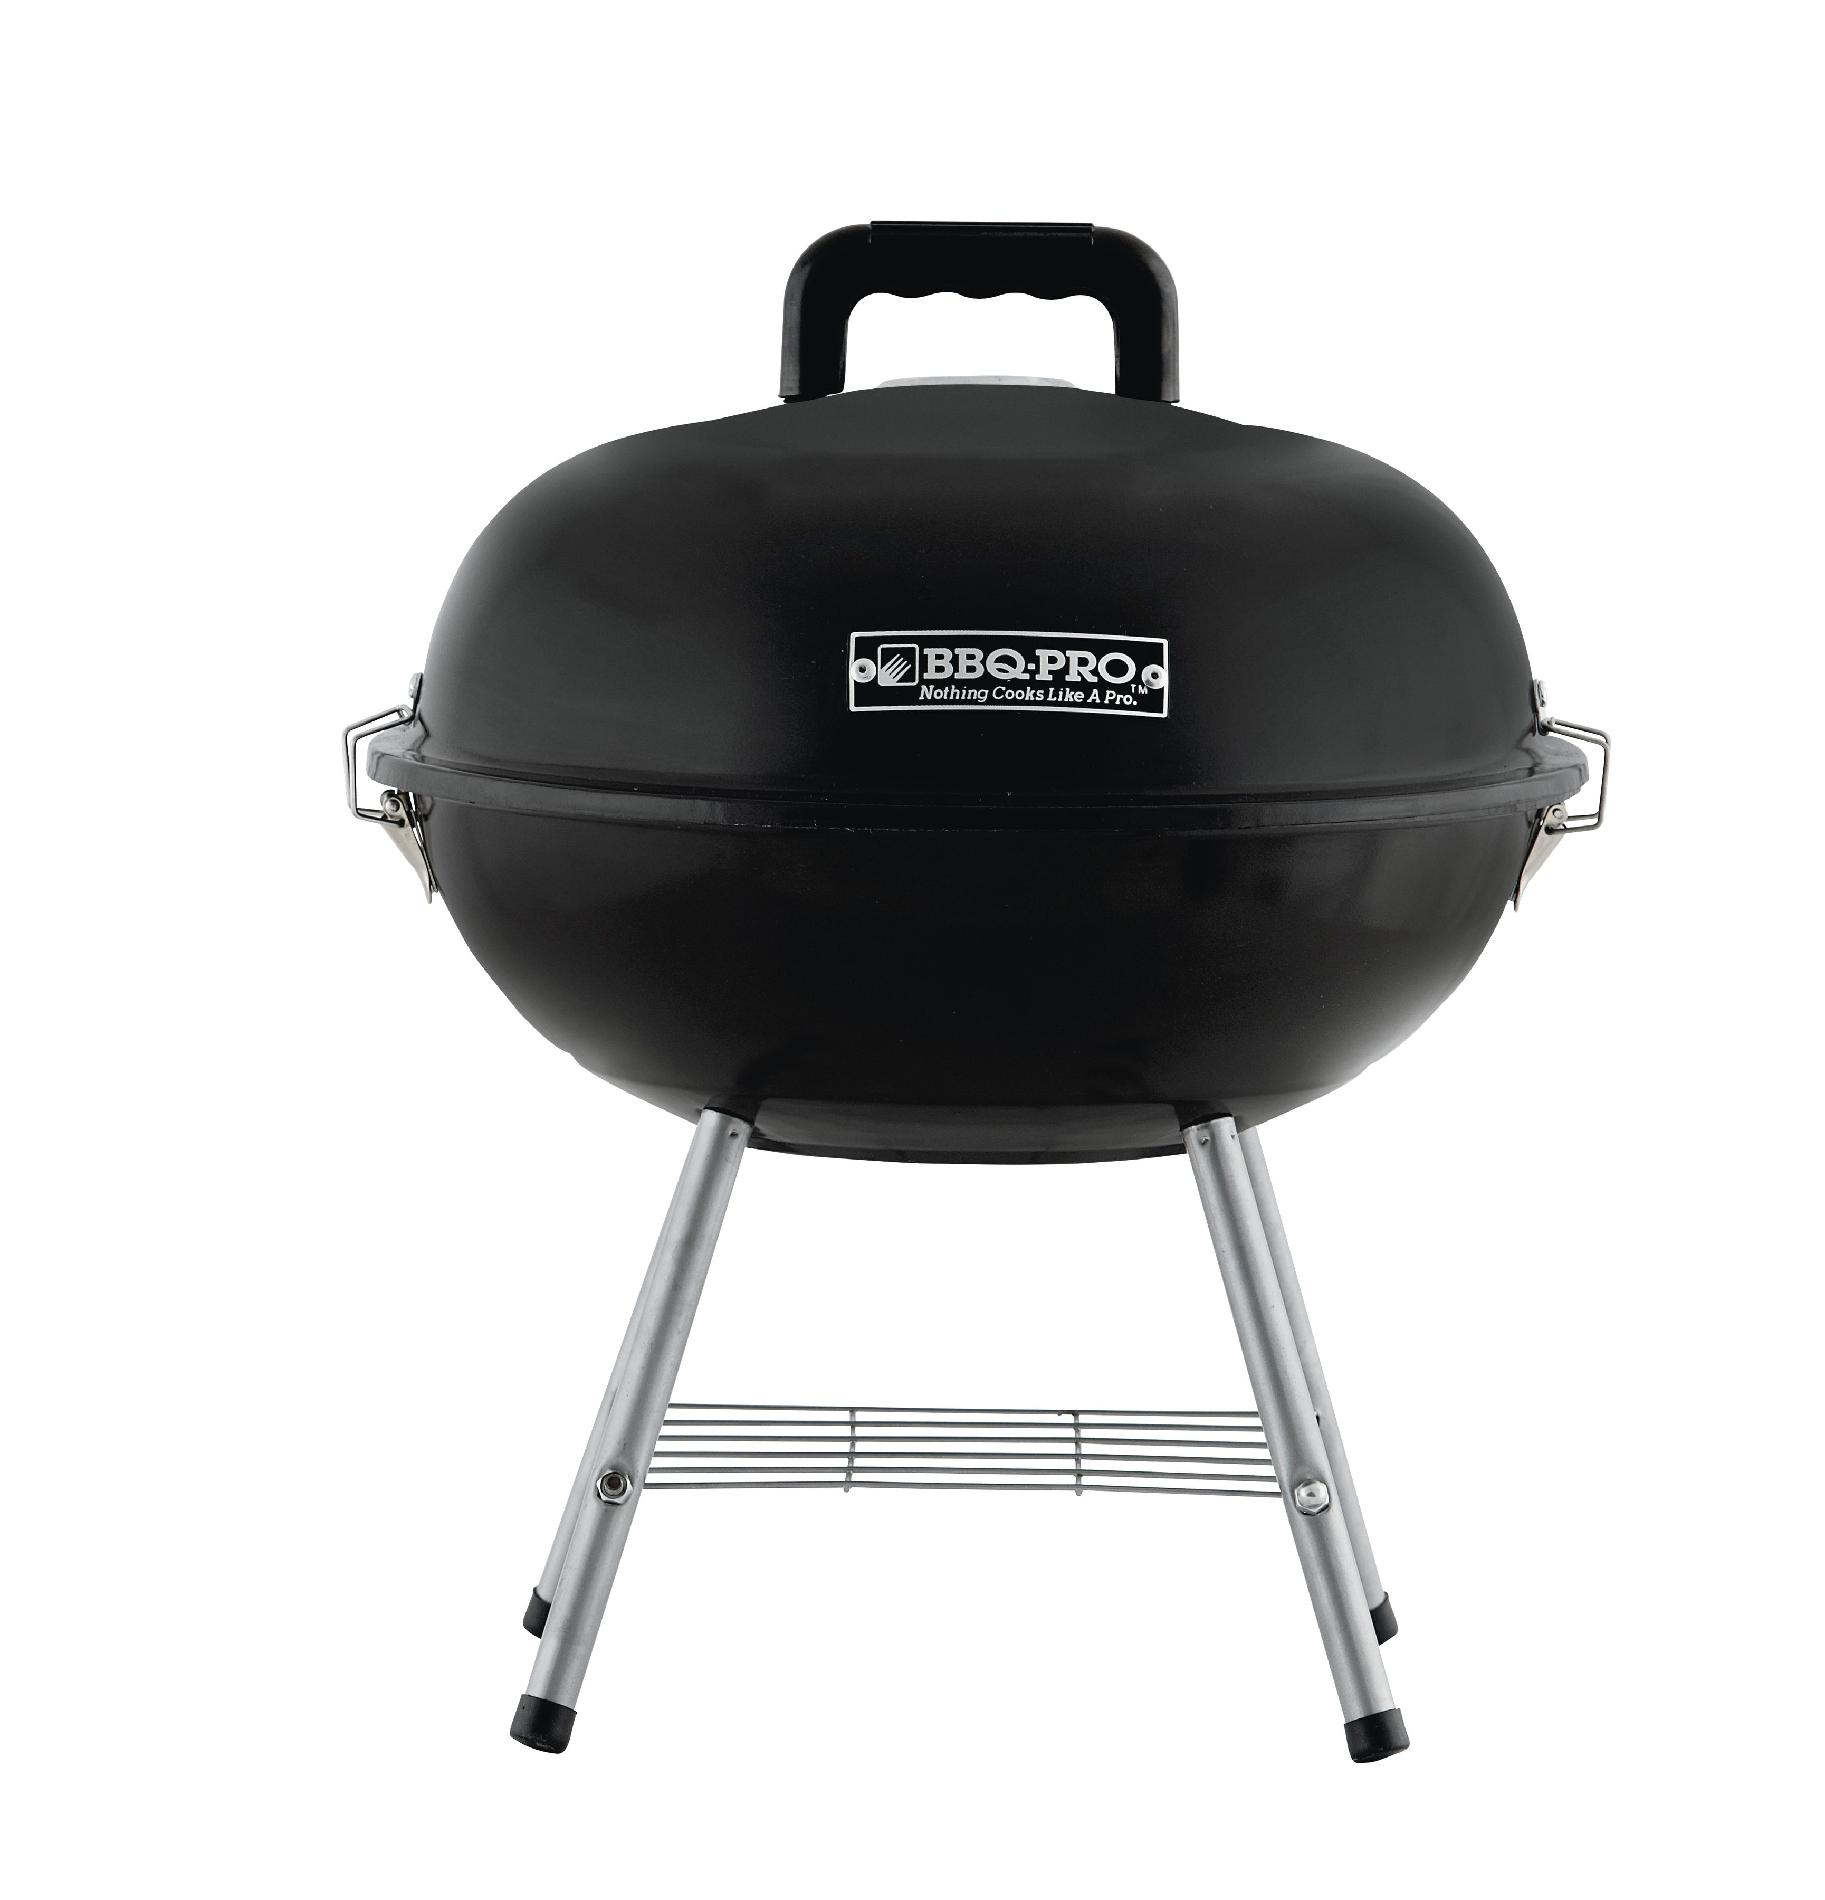 BBQ Pro 14in Tabletop Charcoal Grill - Black